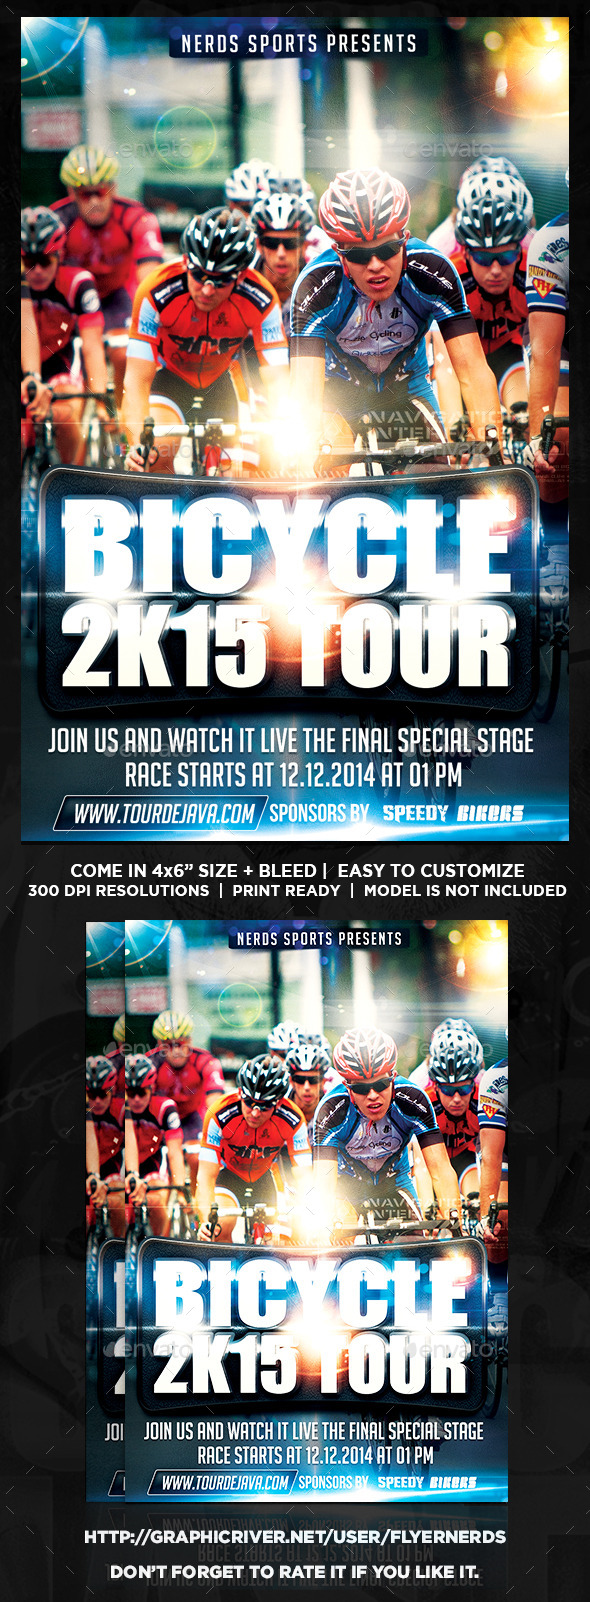 GraphicRiver Bicycle 2K15 Tour Sports Flyer 10022633